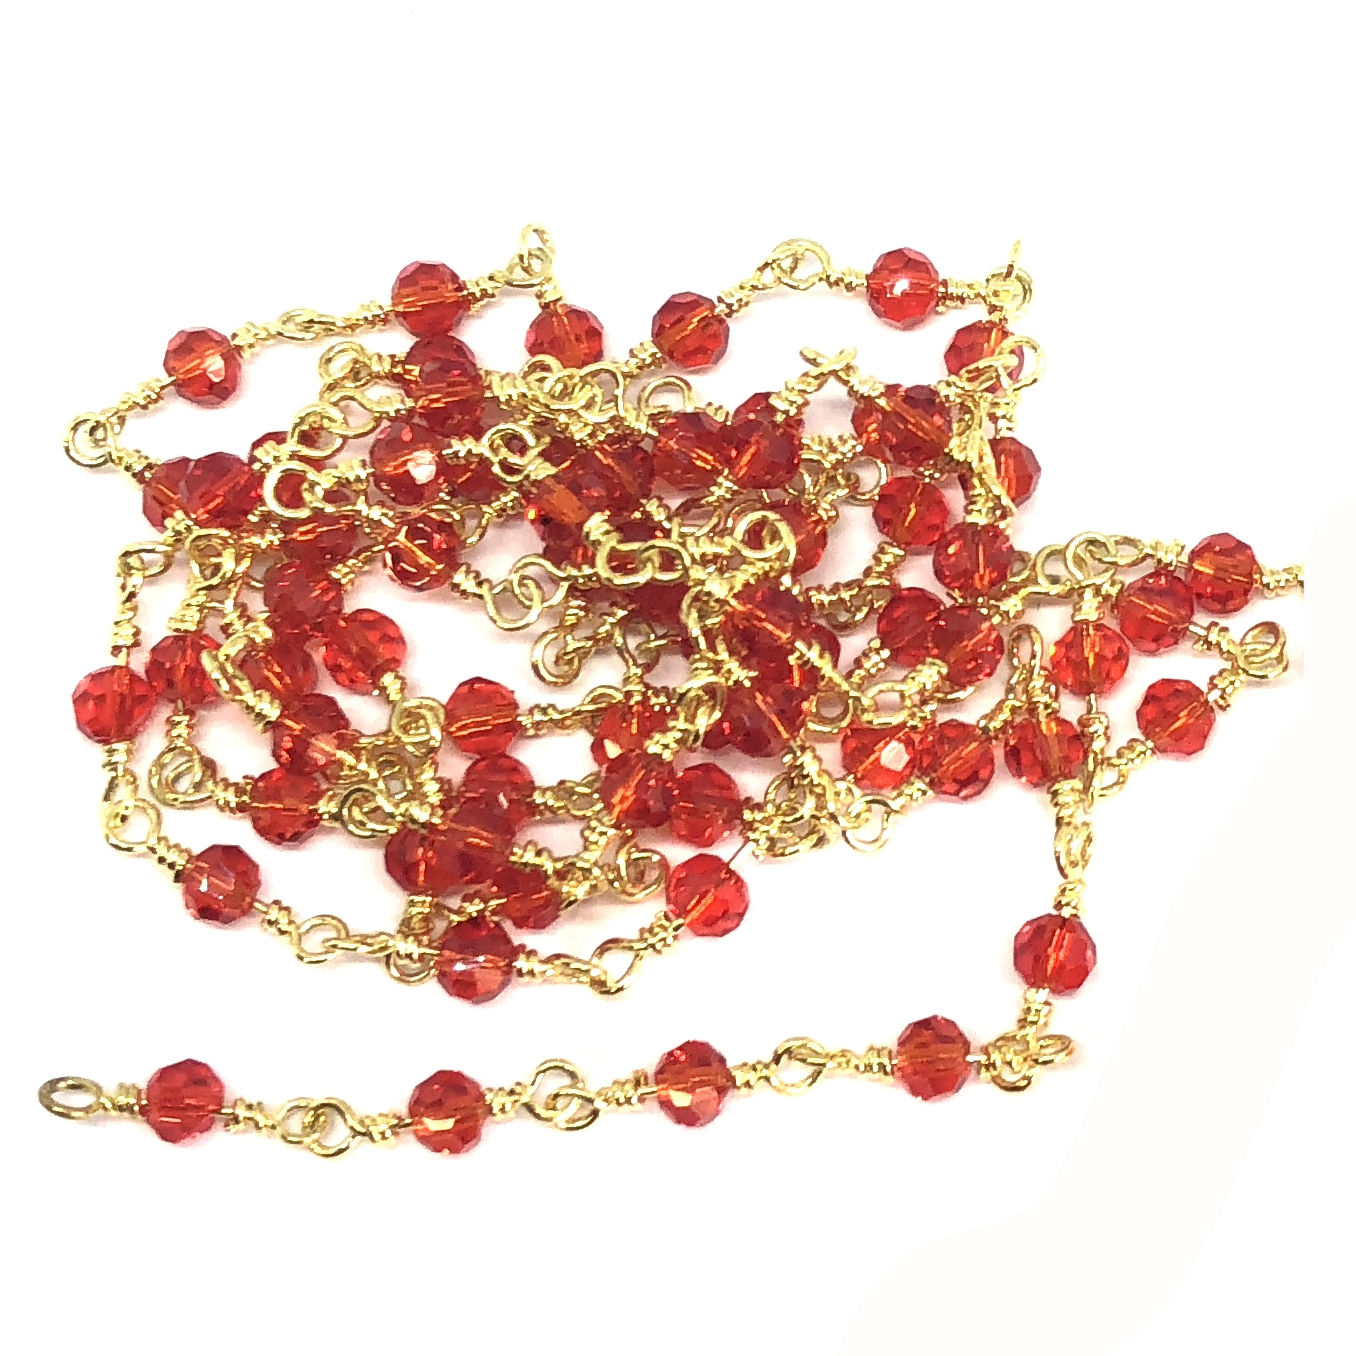 glass bead chain, bead and link chain, wire wrapped chain, gold plate chain, bright red glass beads, jewelry chain, jewelry making supplies, vintage jewelry supplies, bead chain, handmade chain, glass beads, chain, beaded chain, 07834